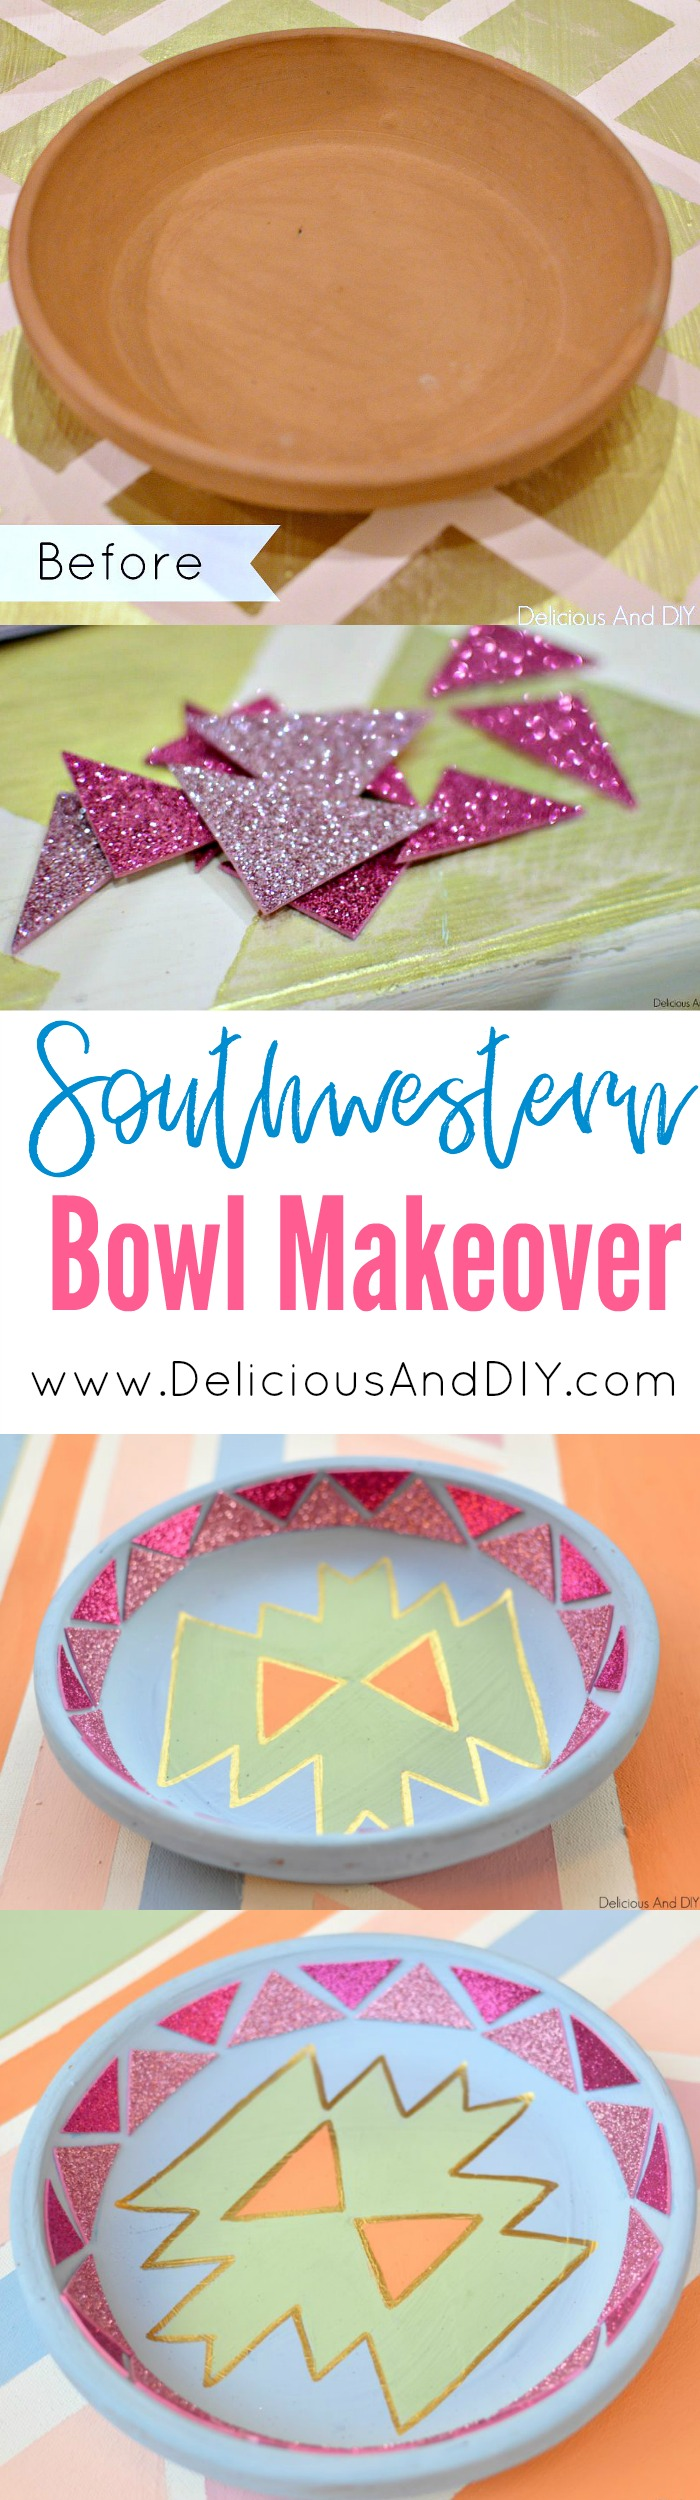 Create a Gorgeous Southwestern Inspired Patten on a Terra Cotta Bowl| Earthen Bowl Makeover | Aztec Inspired Design